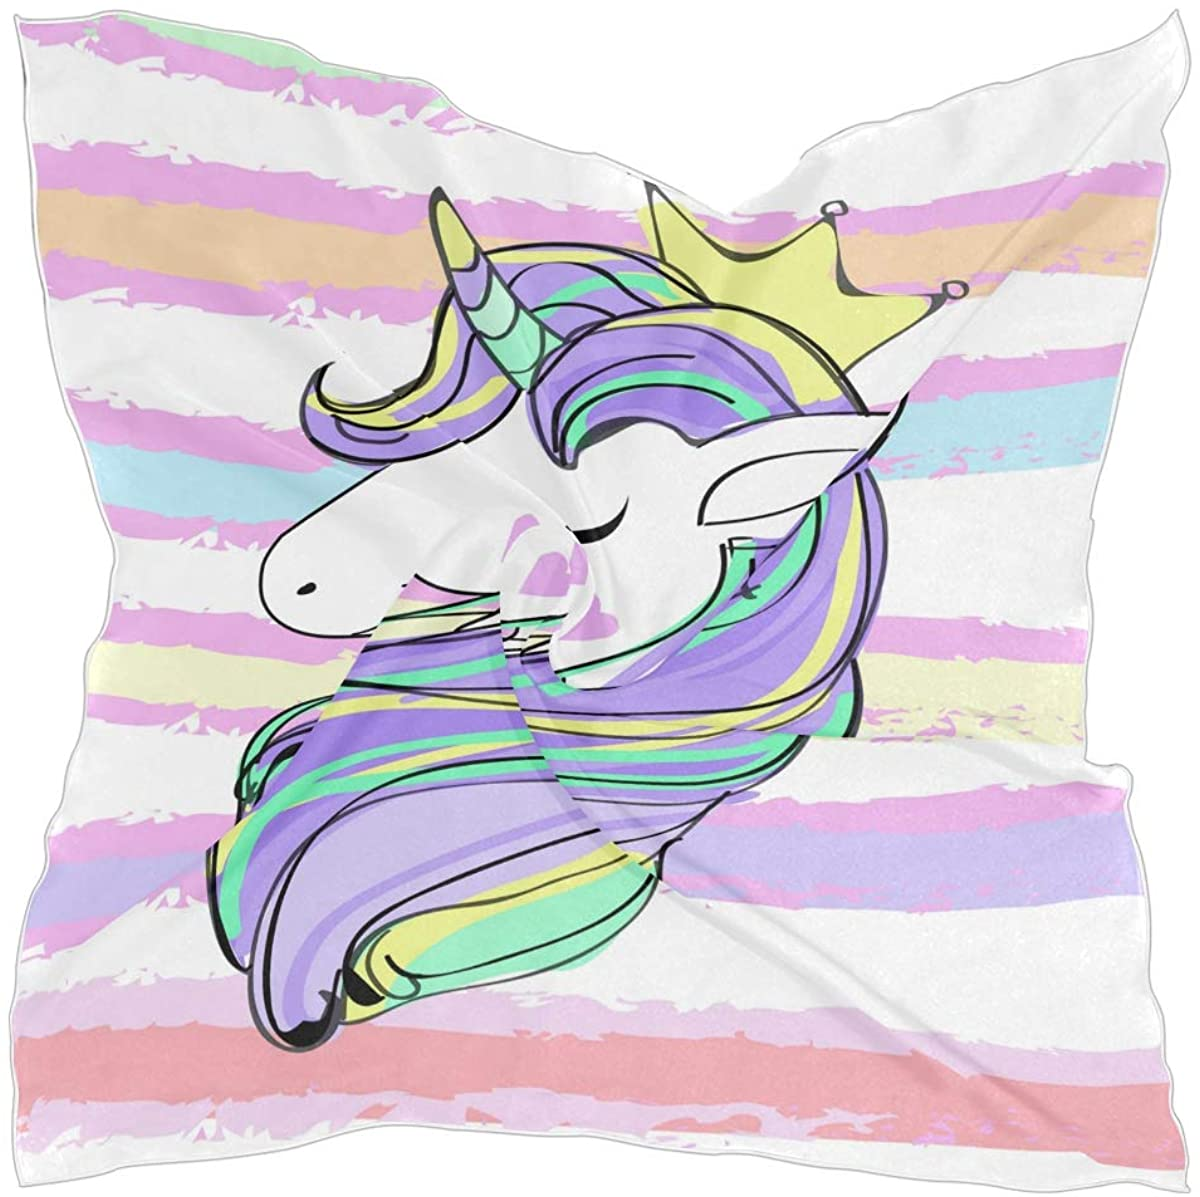 Oprint Square Scarf Polyester Unicorn Head And Striped Lightweight Head Neck Scarf Kerchief for Women Girls